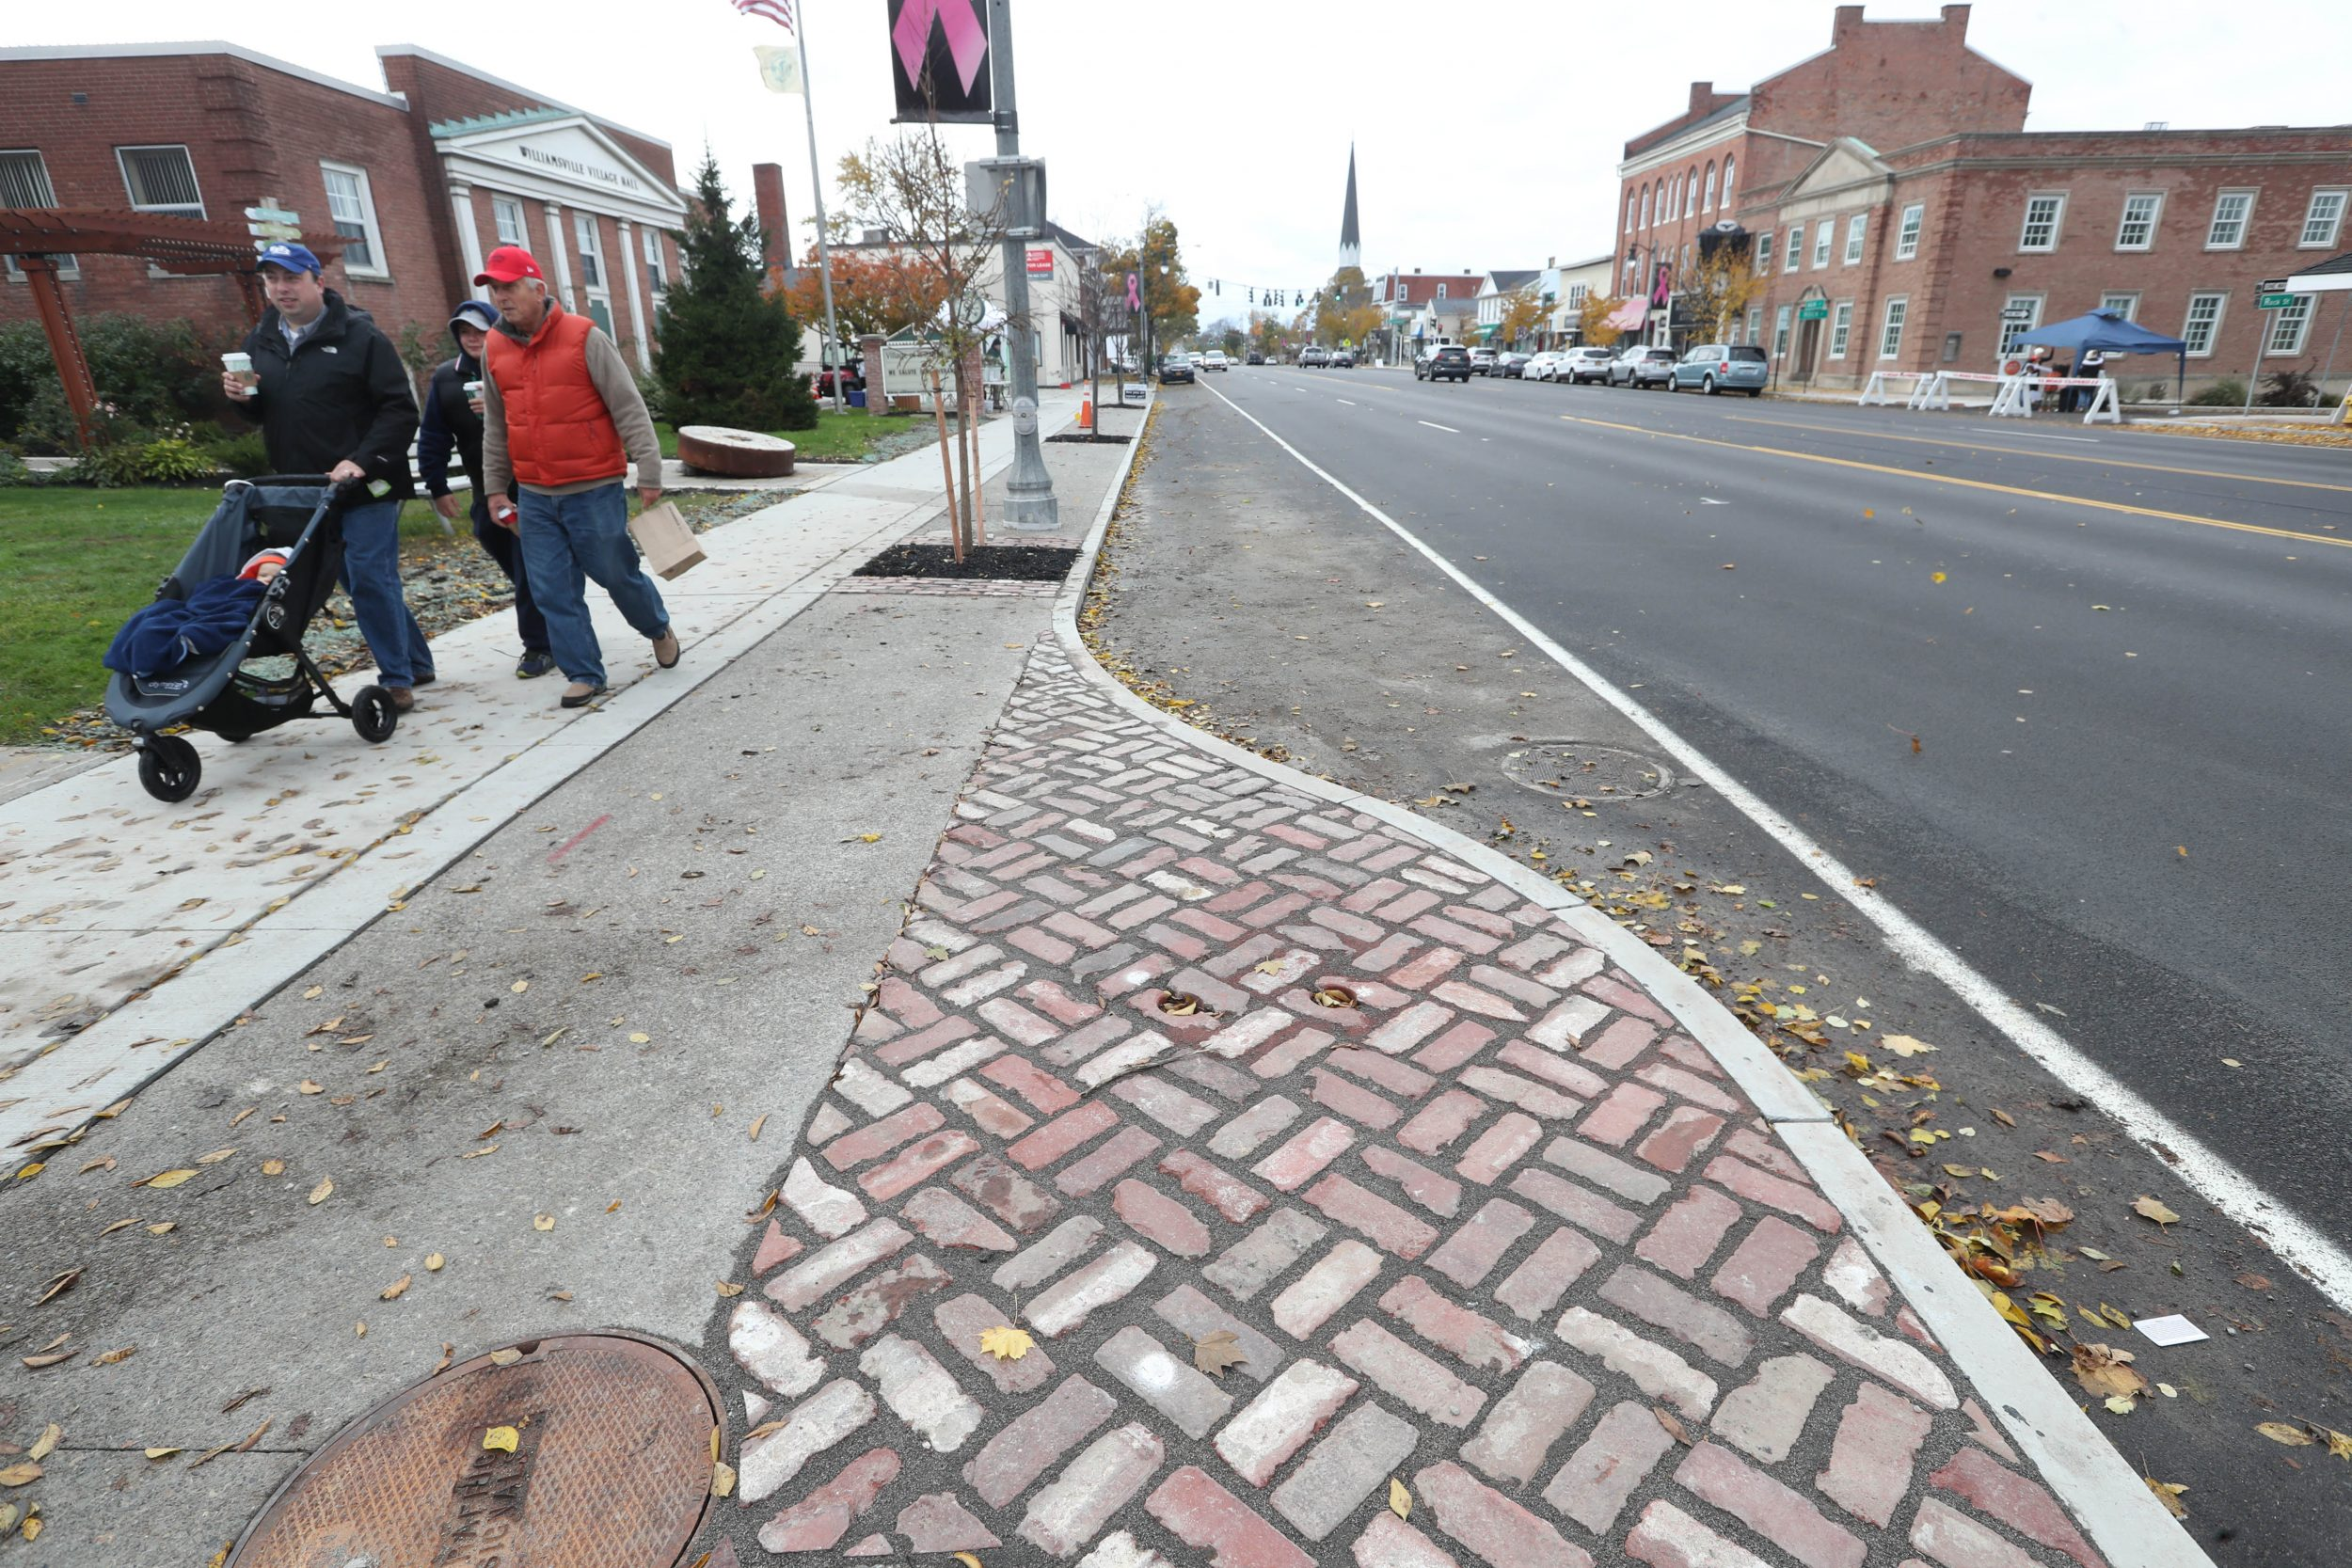 New Traffic Calming Islands On Allen >> After A Decade Of Planning Calmer Traffic Comes To Main Street In